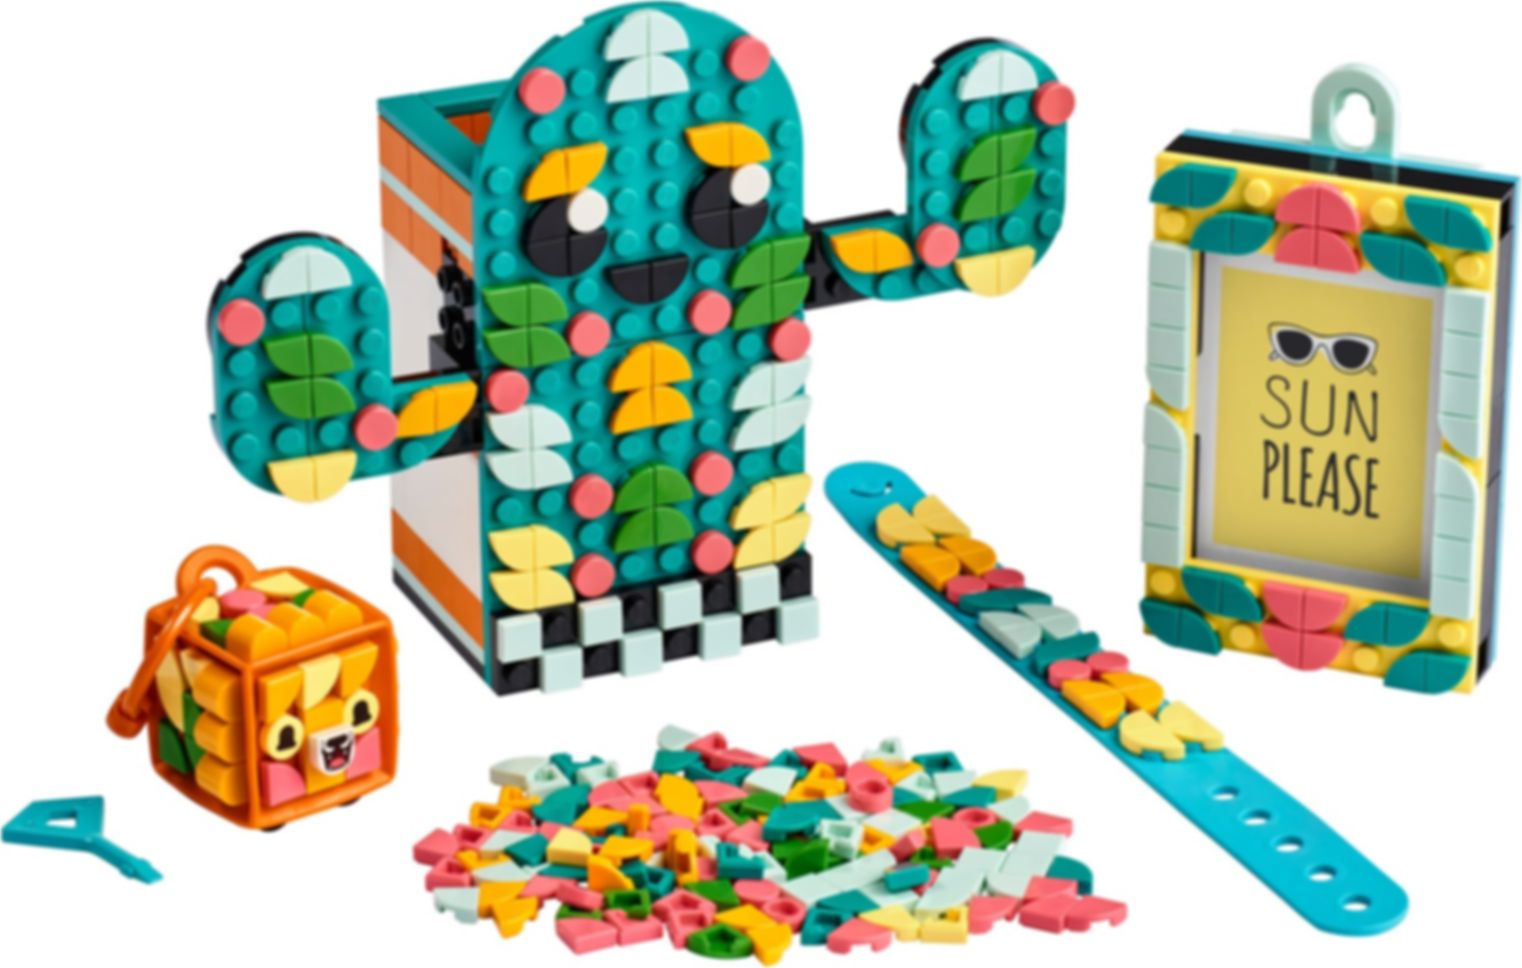 LEGO® DOTS Multi Pack - Summer Vibes components